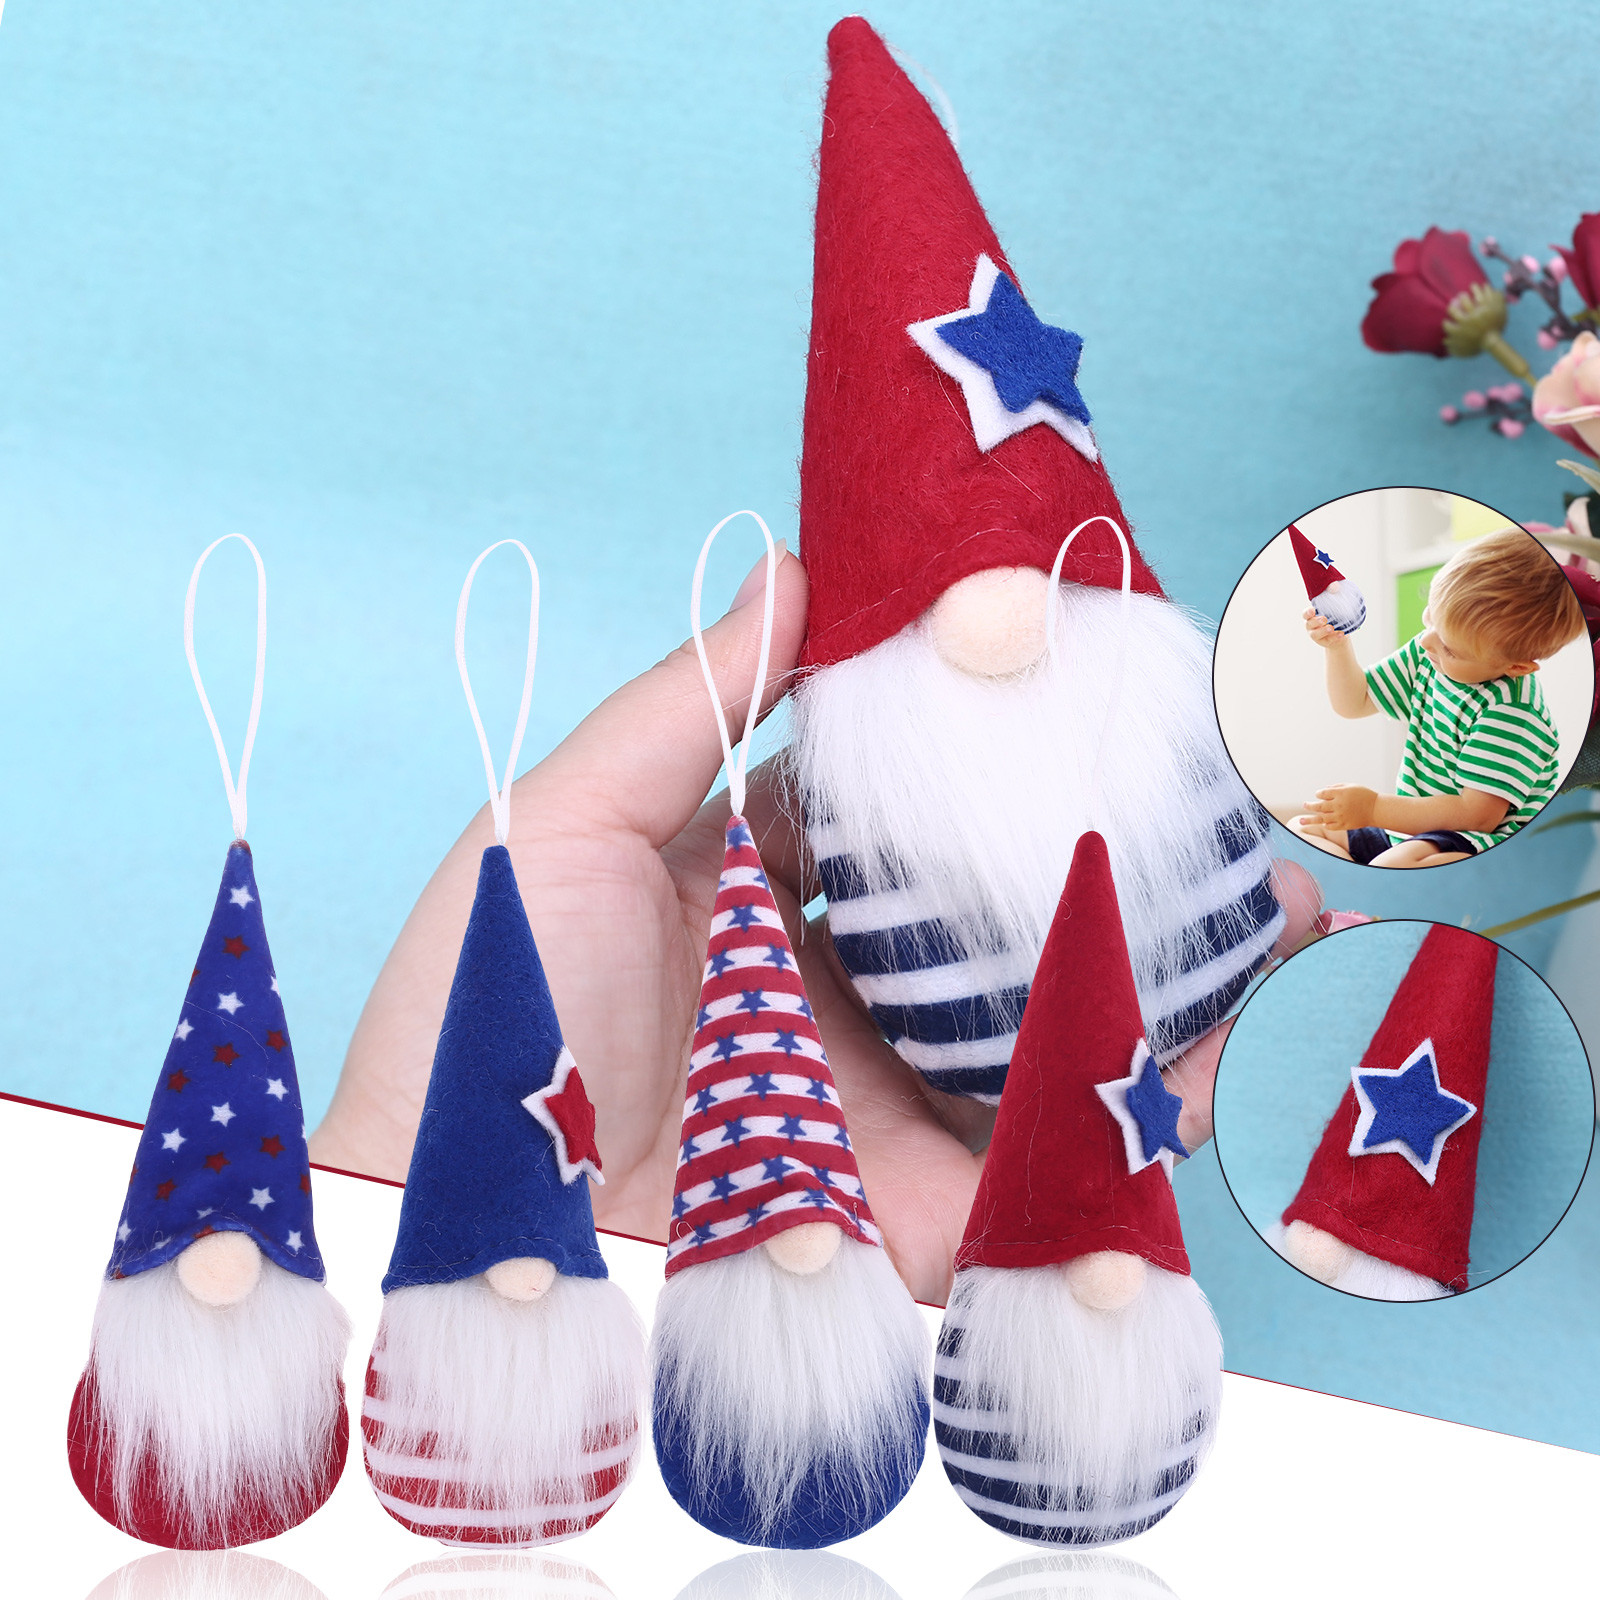 Plush Toy Kawaii Patriotic Gnome Doll Dwarf Plush Doll Decorations Holiday Gifts Household For Baby Girl Boy Birthday Best Gift